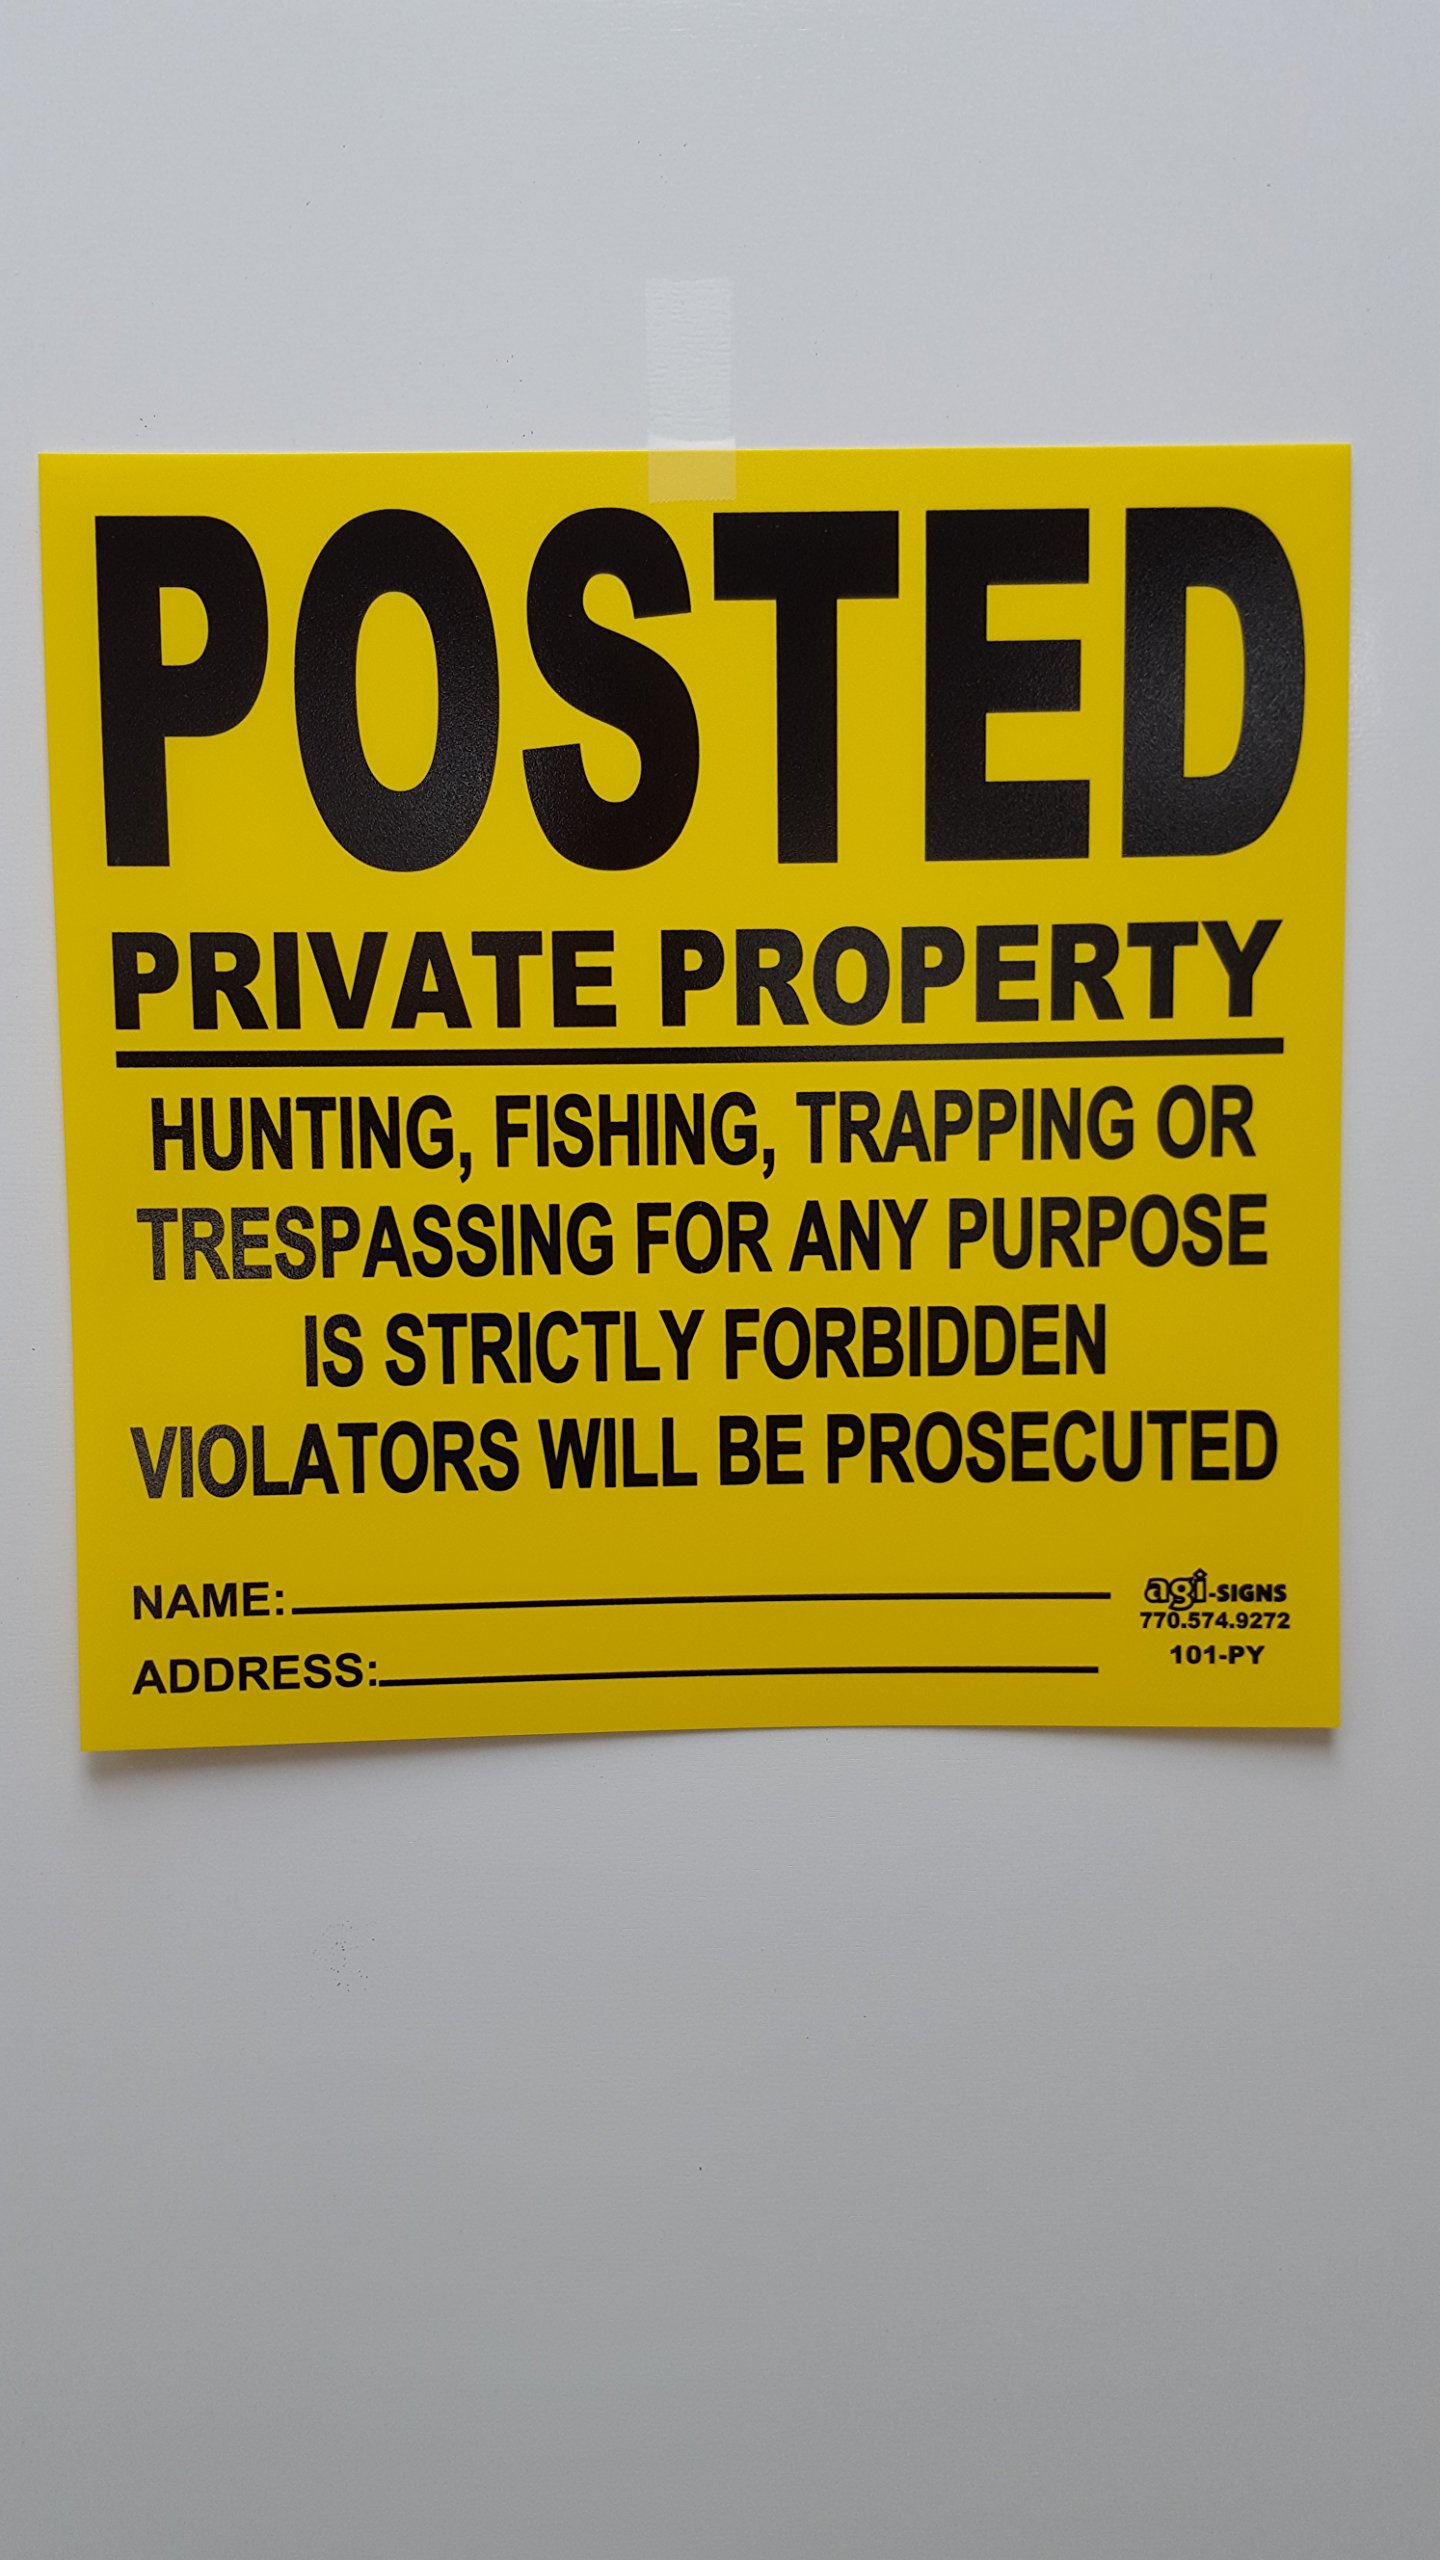 20 Pack - .023'' x 11.25'' x 11.25'' HDPE Posted Private Property, Violators Prosecuted Sign